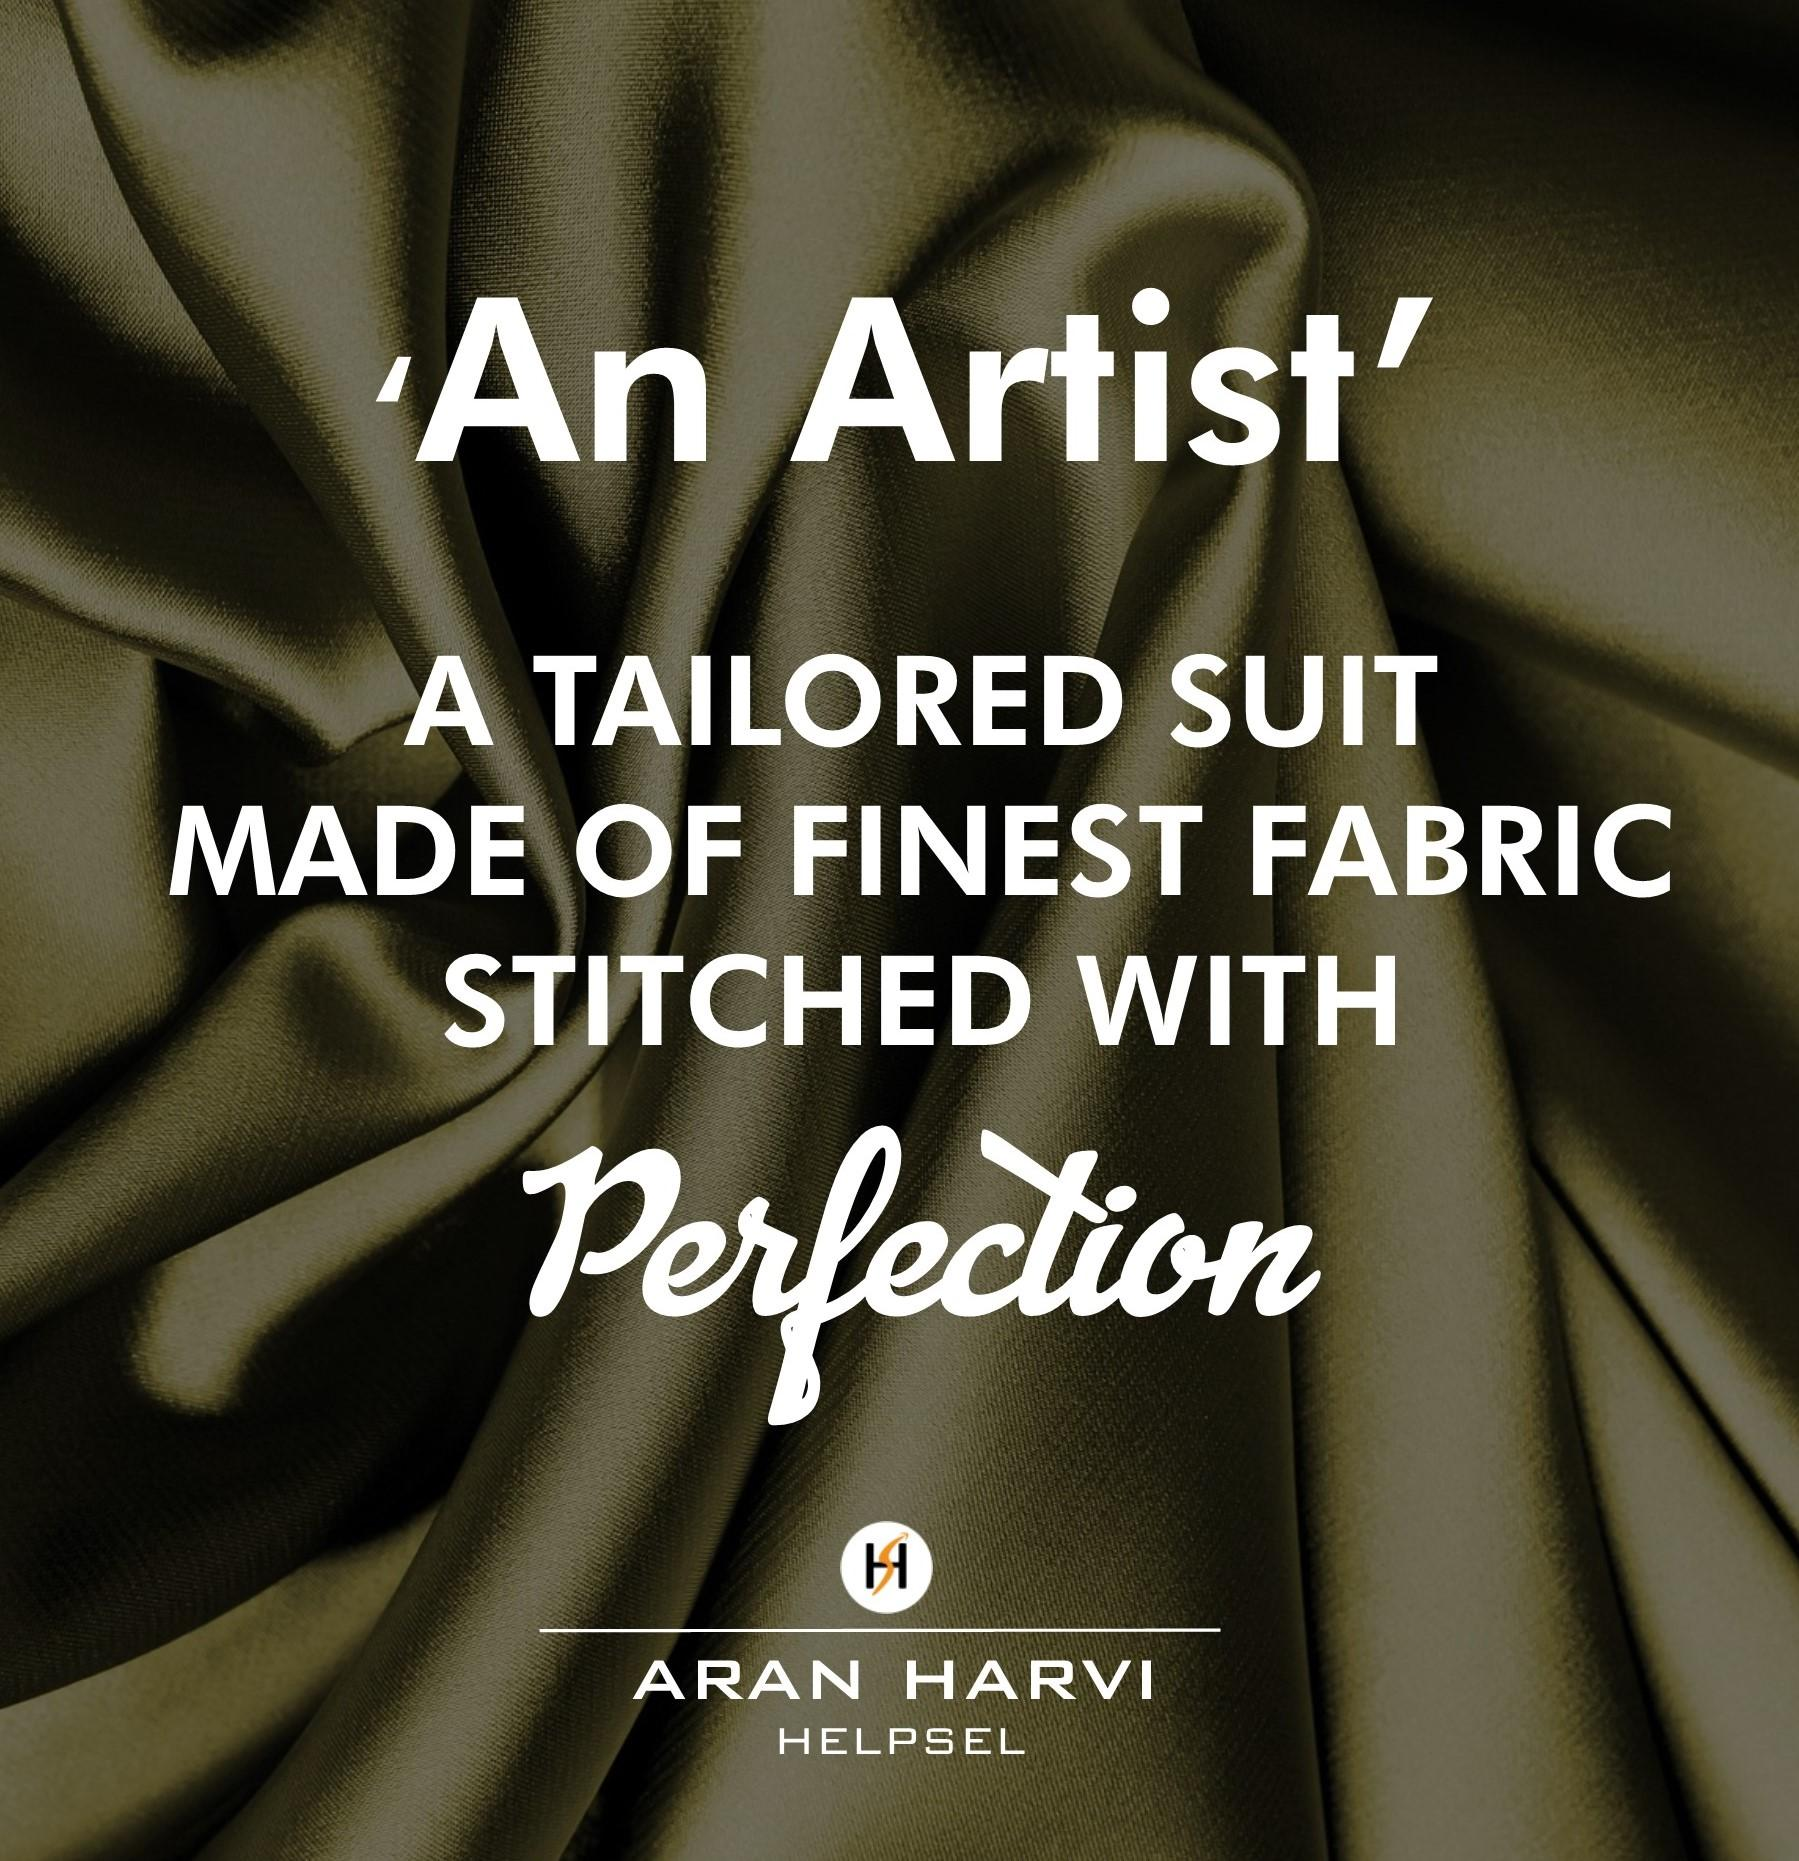 """An Artist – A Tailored Suit Made of Finest Fabric Stitched With Perfection""- Aran Harvi [OC][960×960]"